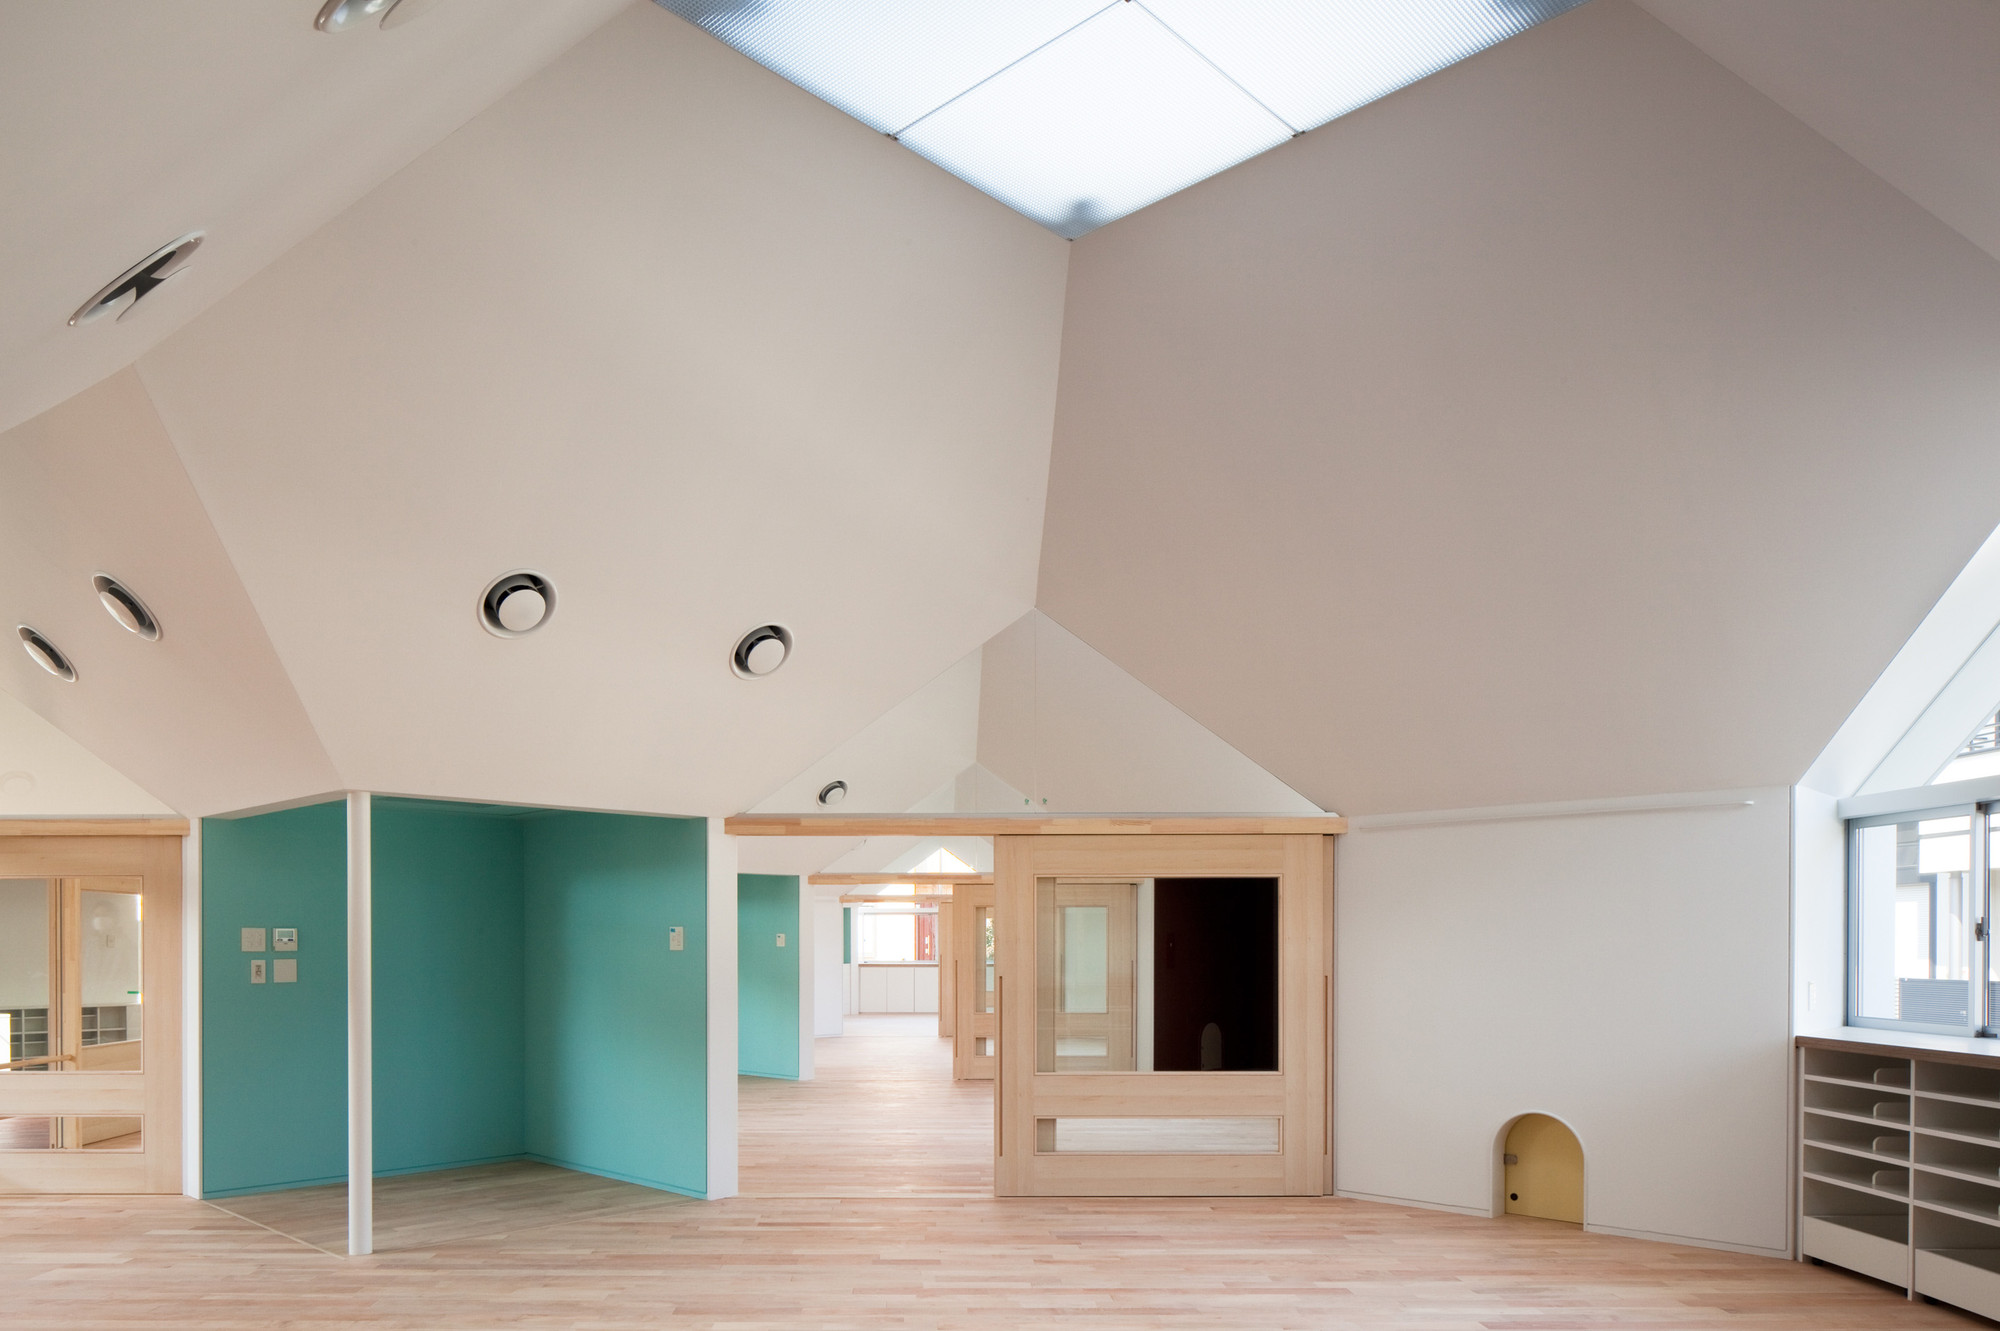 Kobato Nursery School / so1architect, © Kai Nakamura